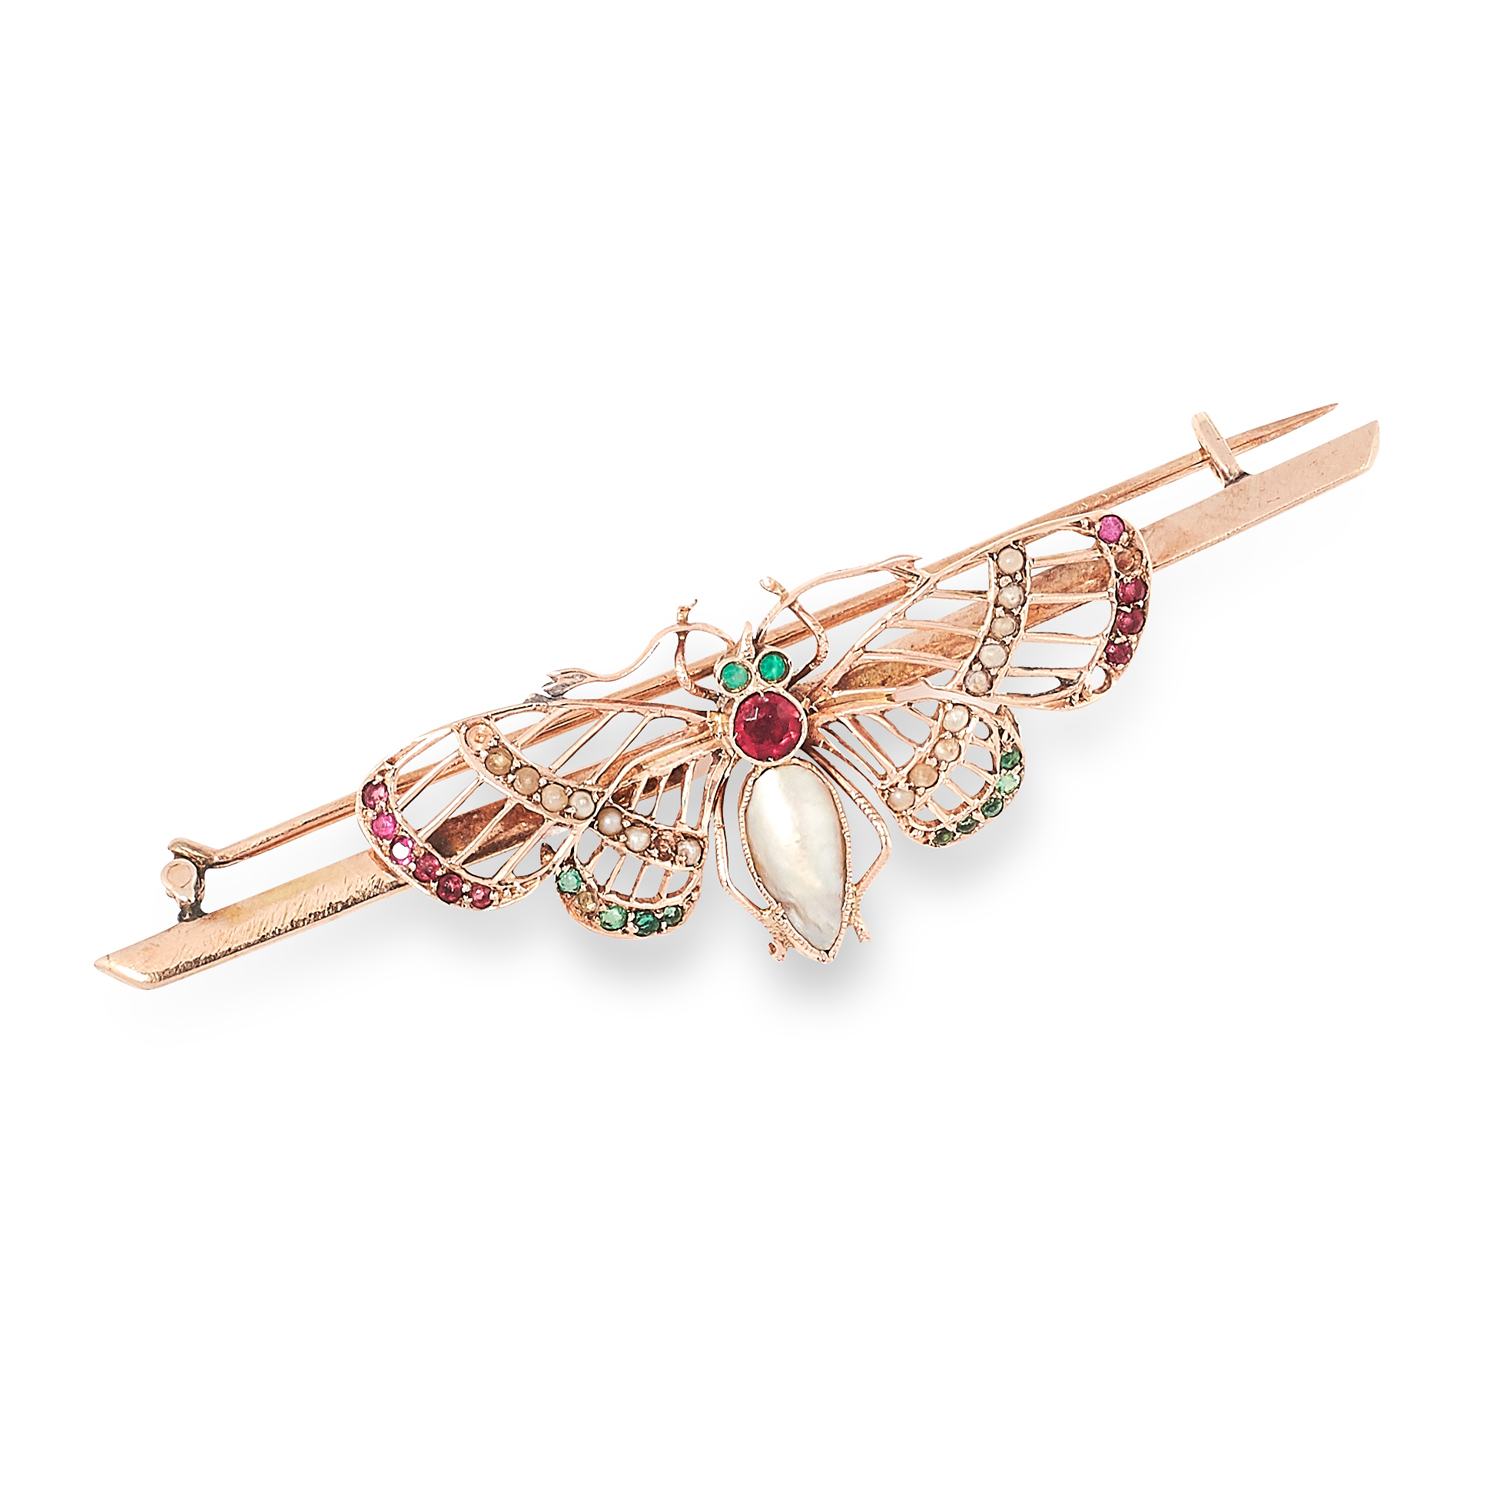 AN ANTIQUE GEMSET BUTTERFLY BROOCH set with pearls, round cut rubies and emeralds, 6.7cm, 5.6g.